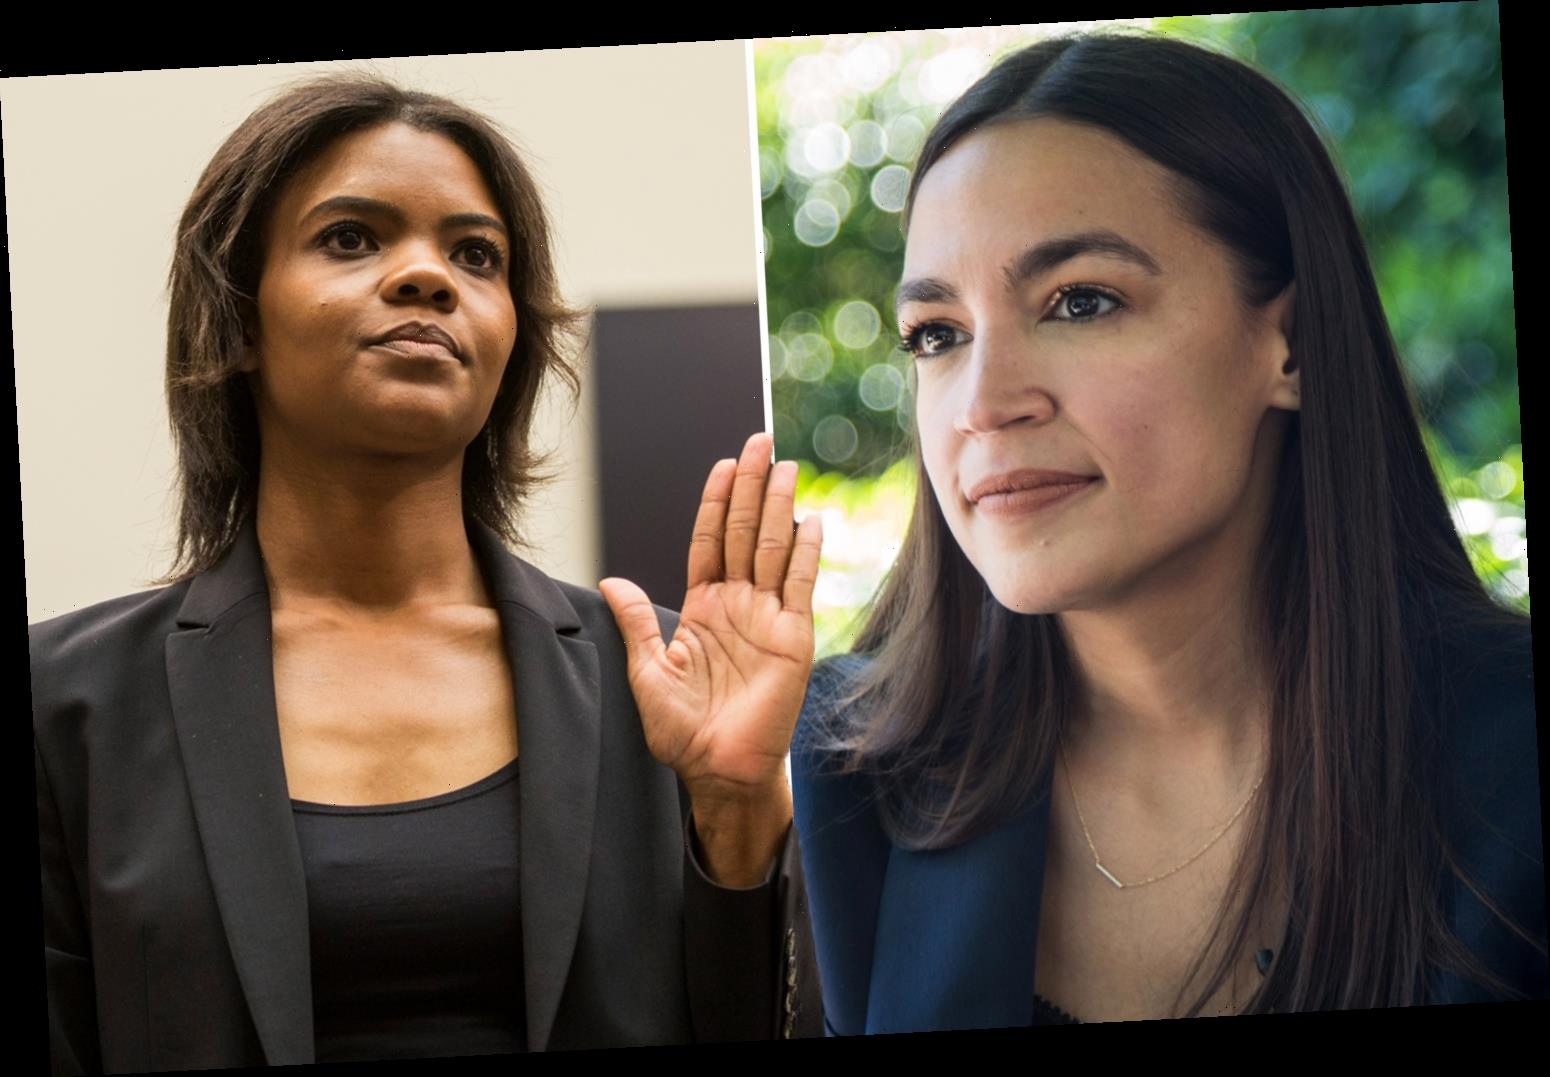 Candace Owens slams AOC for 'trying to cause an insurrection against ICE' and says ANTIFA 'attempted to murder agents'